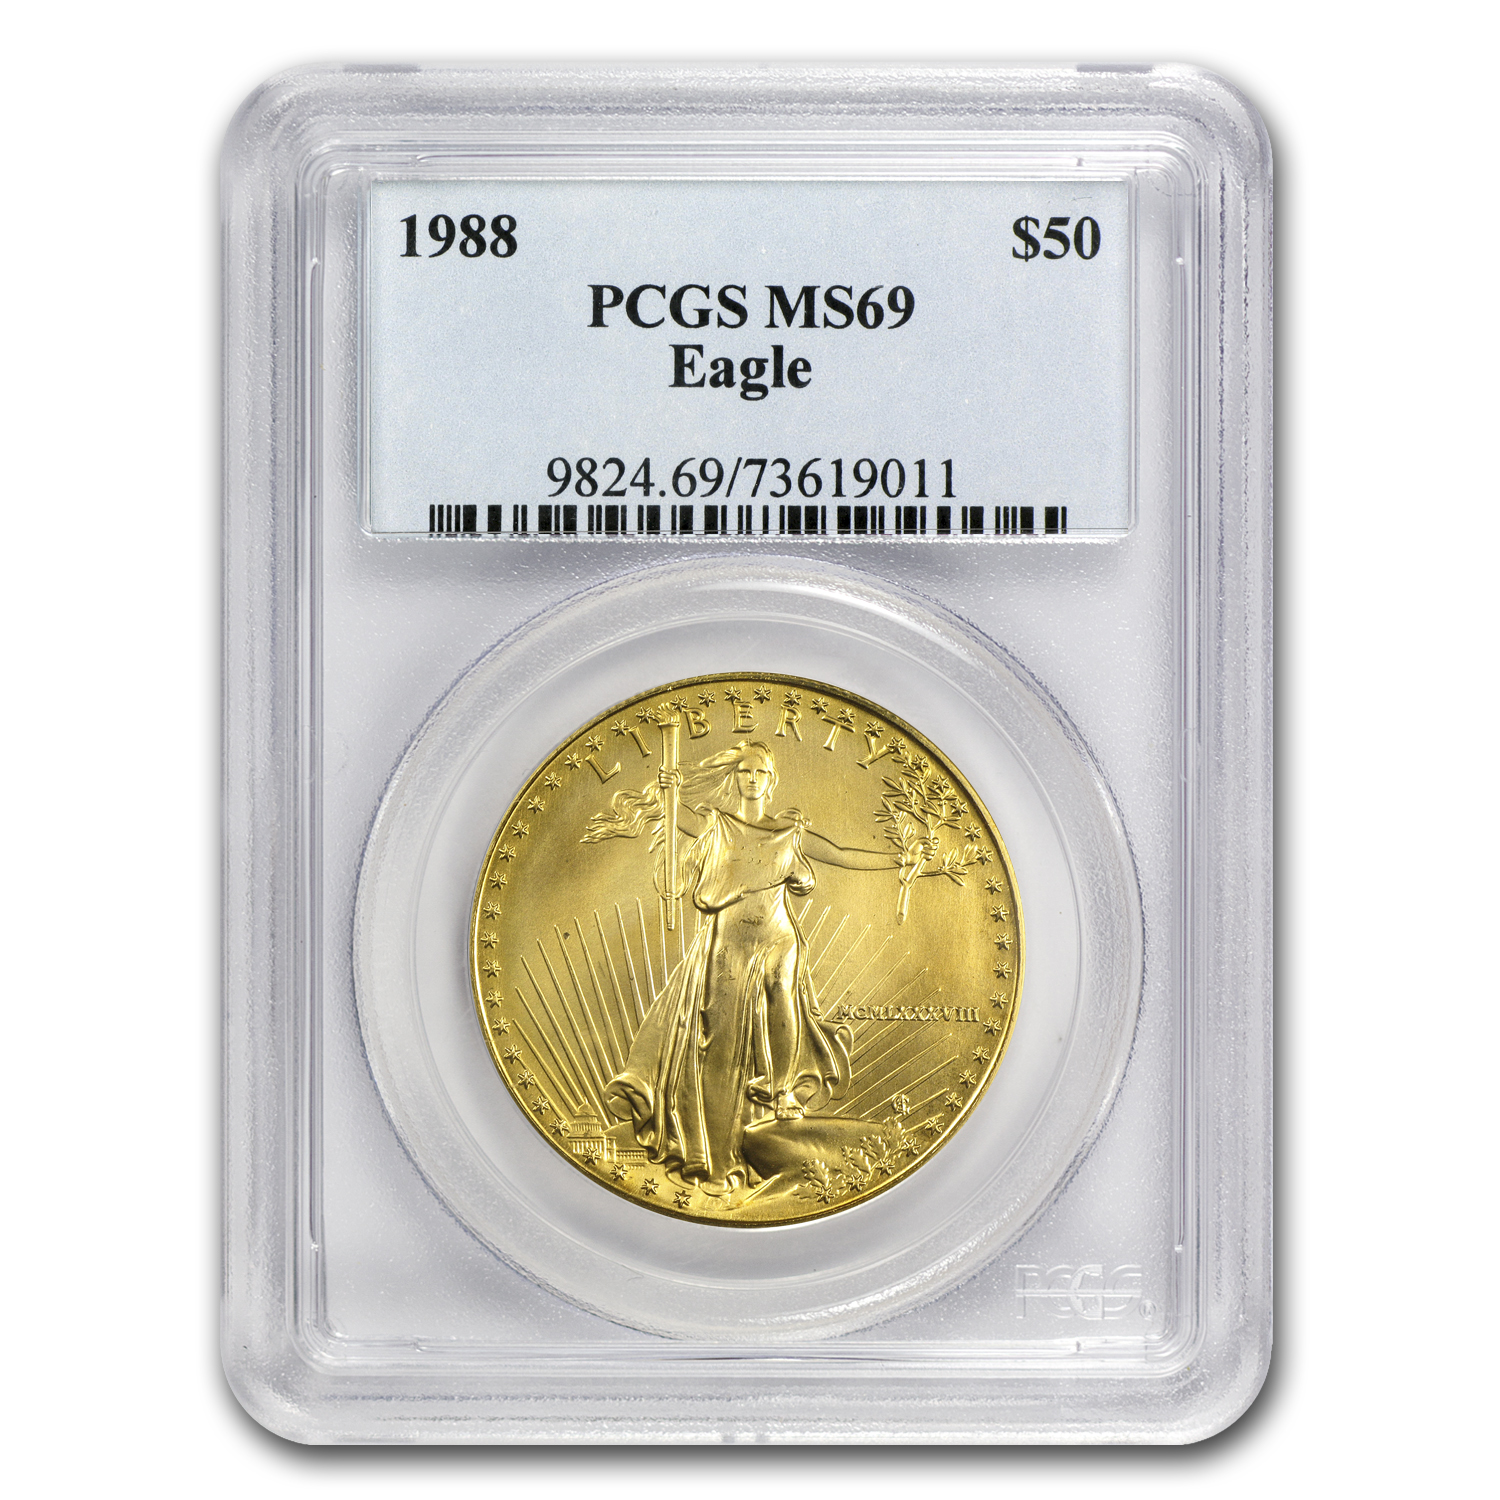 1988 1 oz Gold American Eagle MS-69 PCGS